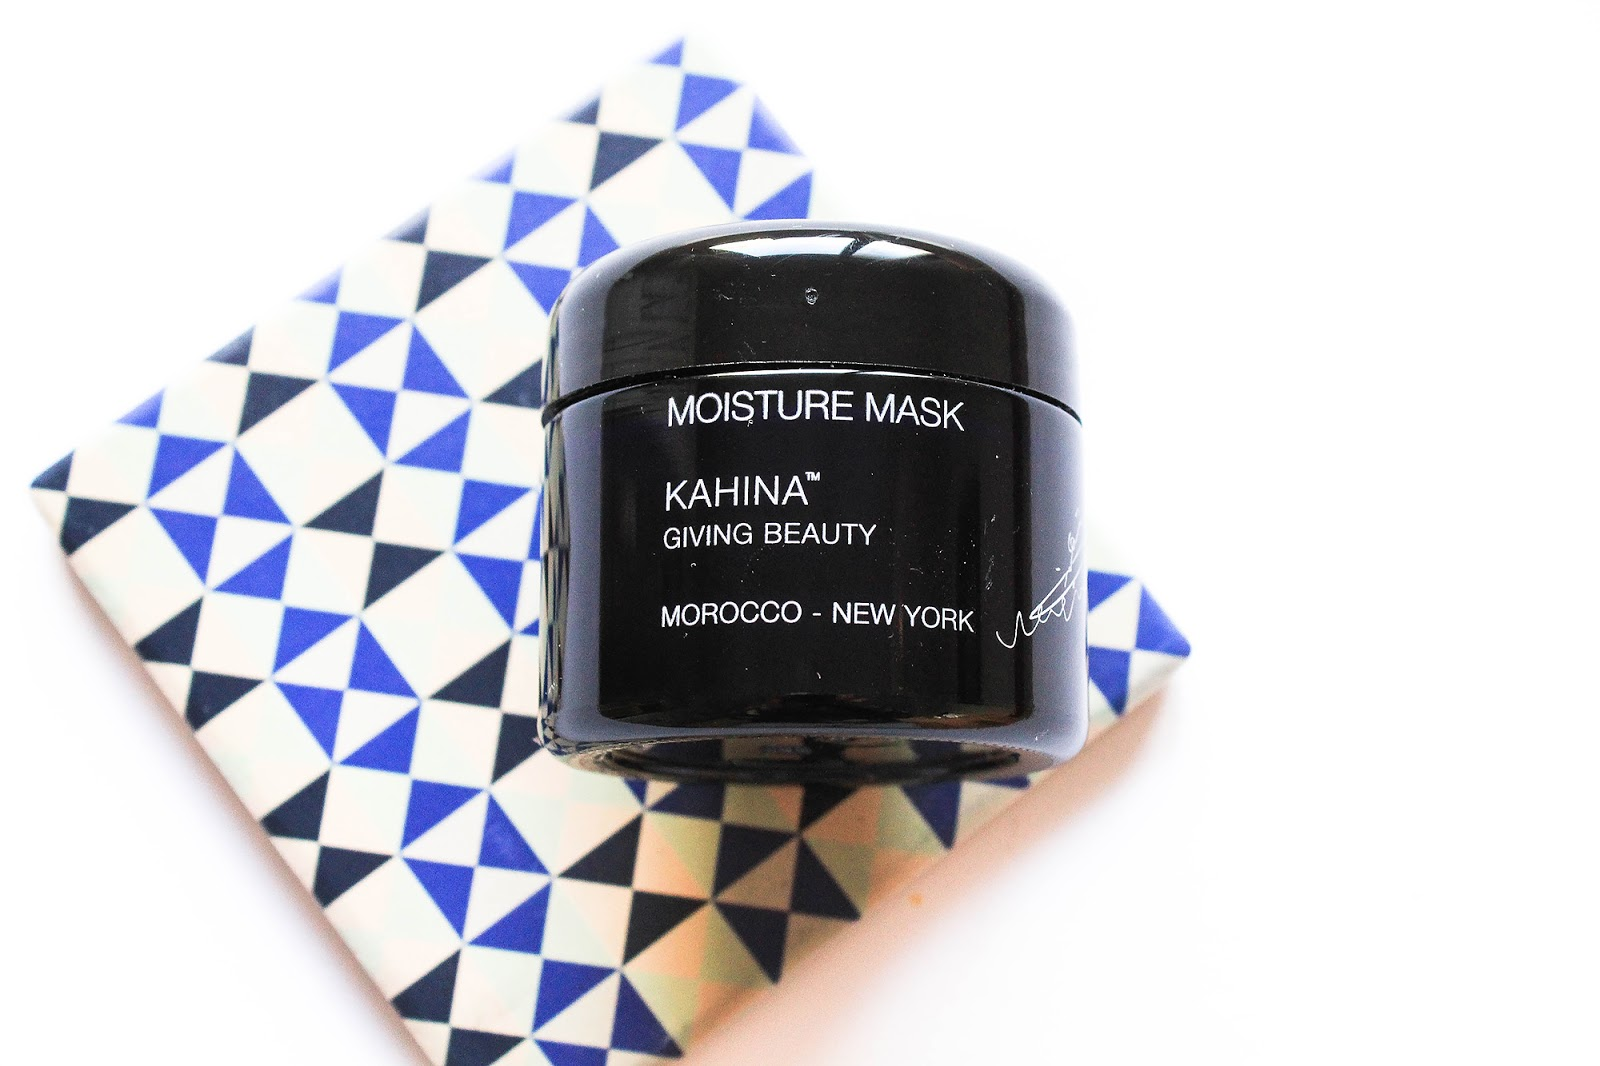 Kahina Giving Beauty Moisture Mask. Art of Organics.